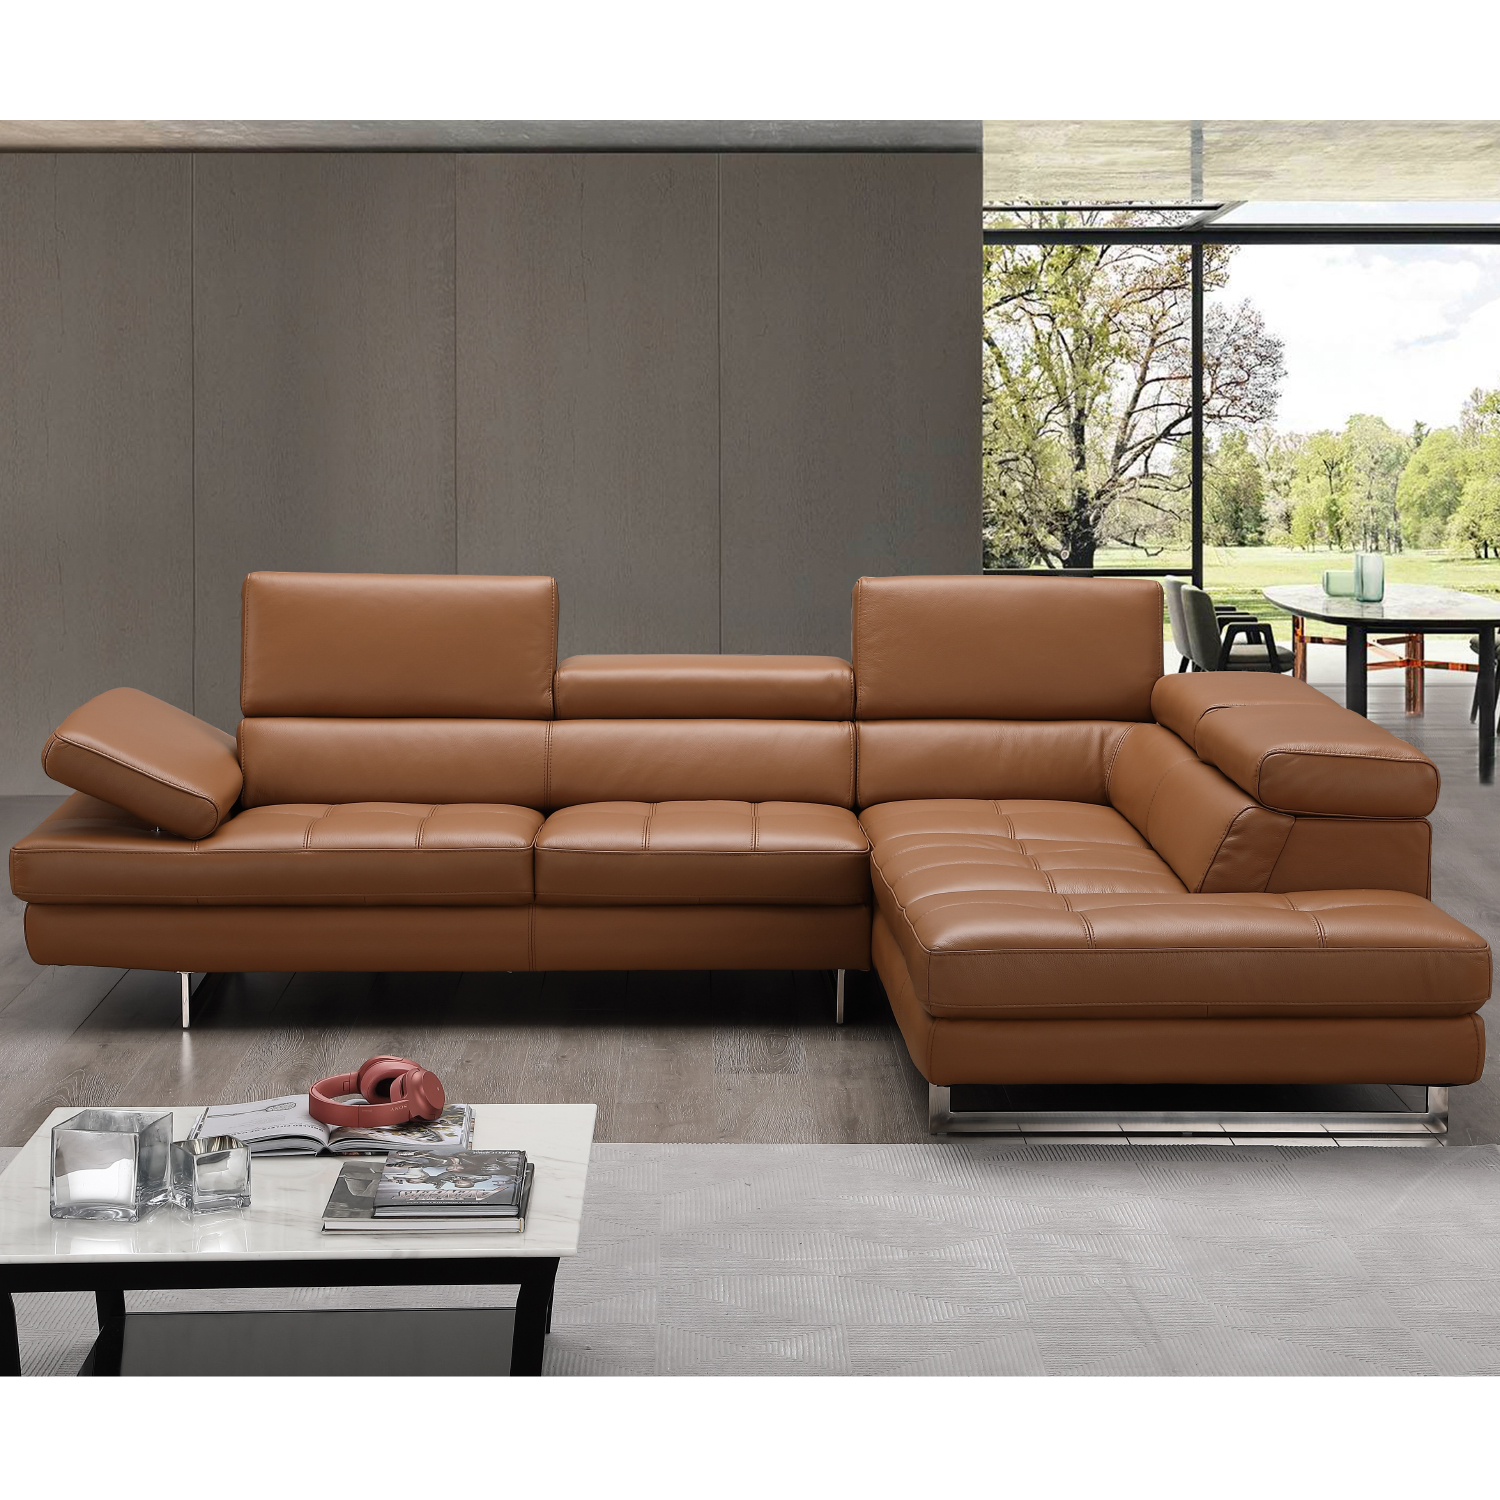 Prime Napoli A761 Italian Leather Sectional In Caramel W Right Facing Chaise By J And M Furniture Machost Co Dining Chair Design Ideas Machostcouk